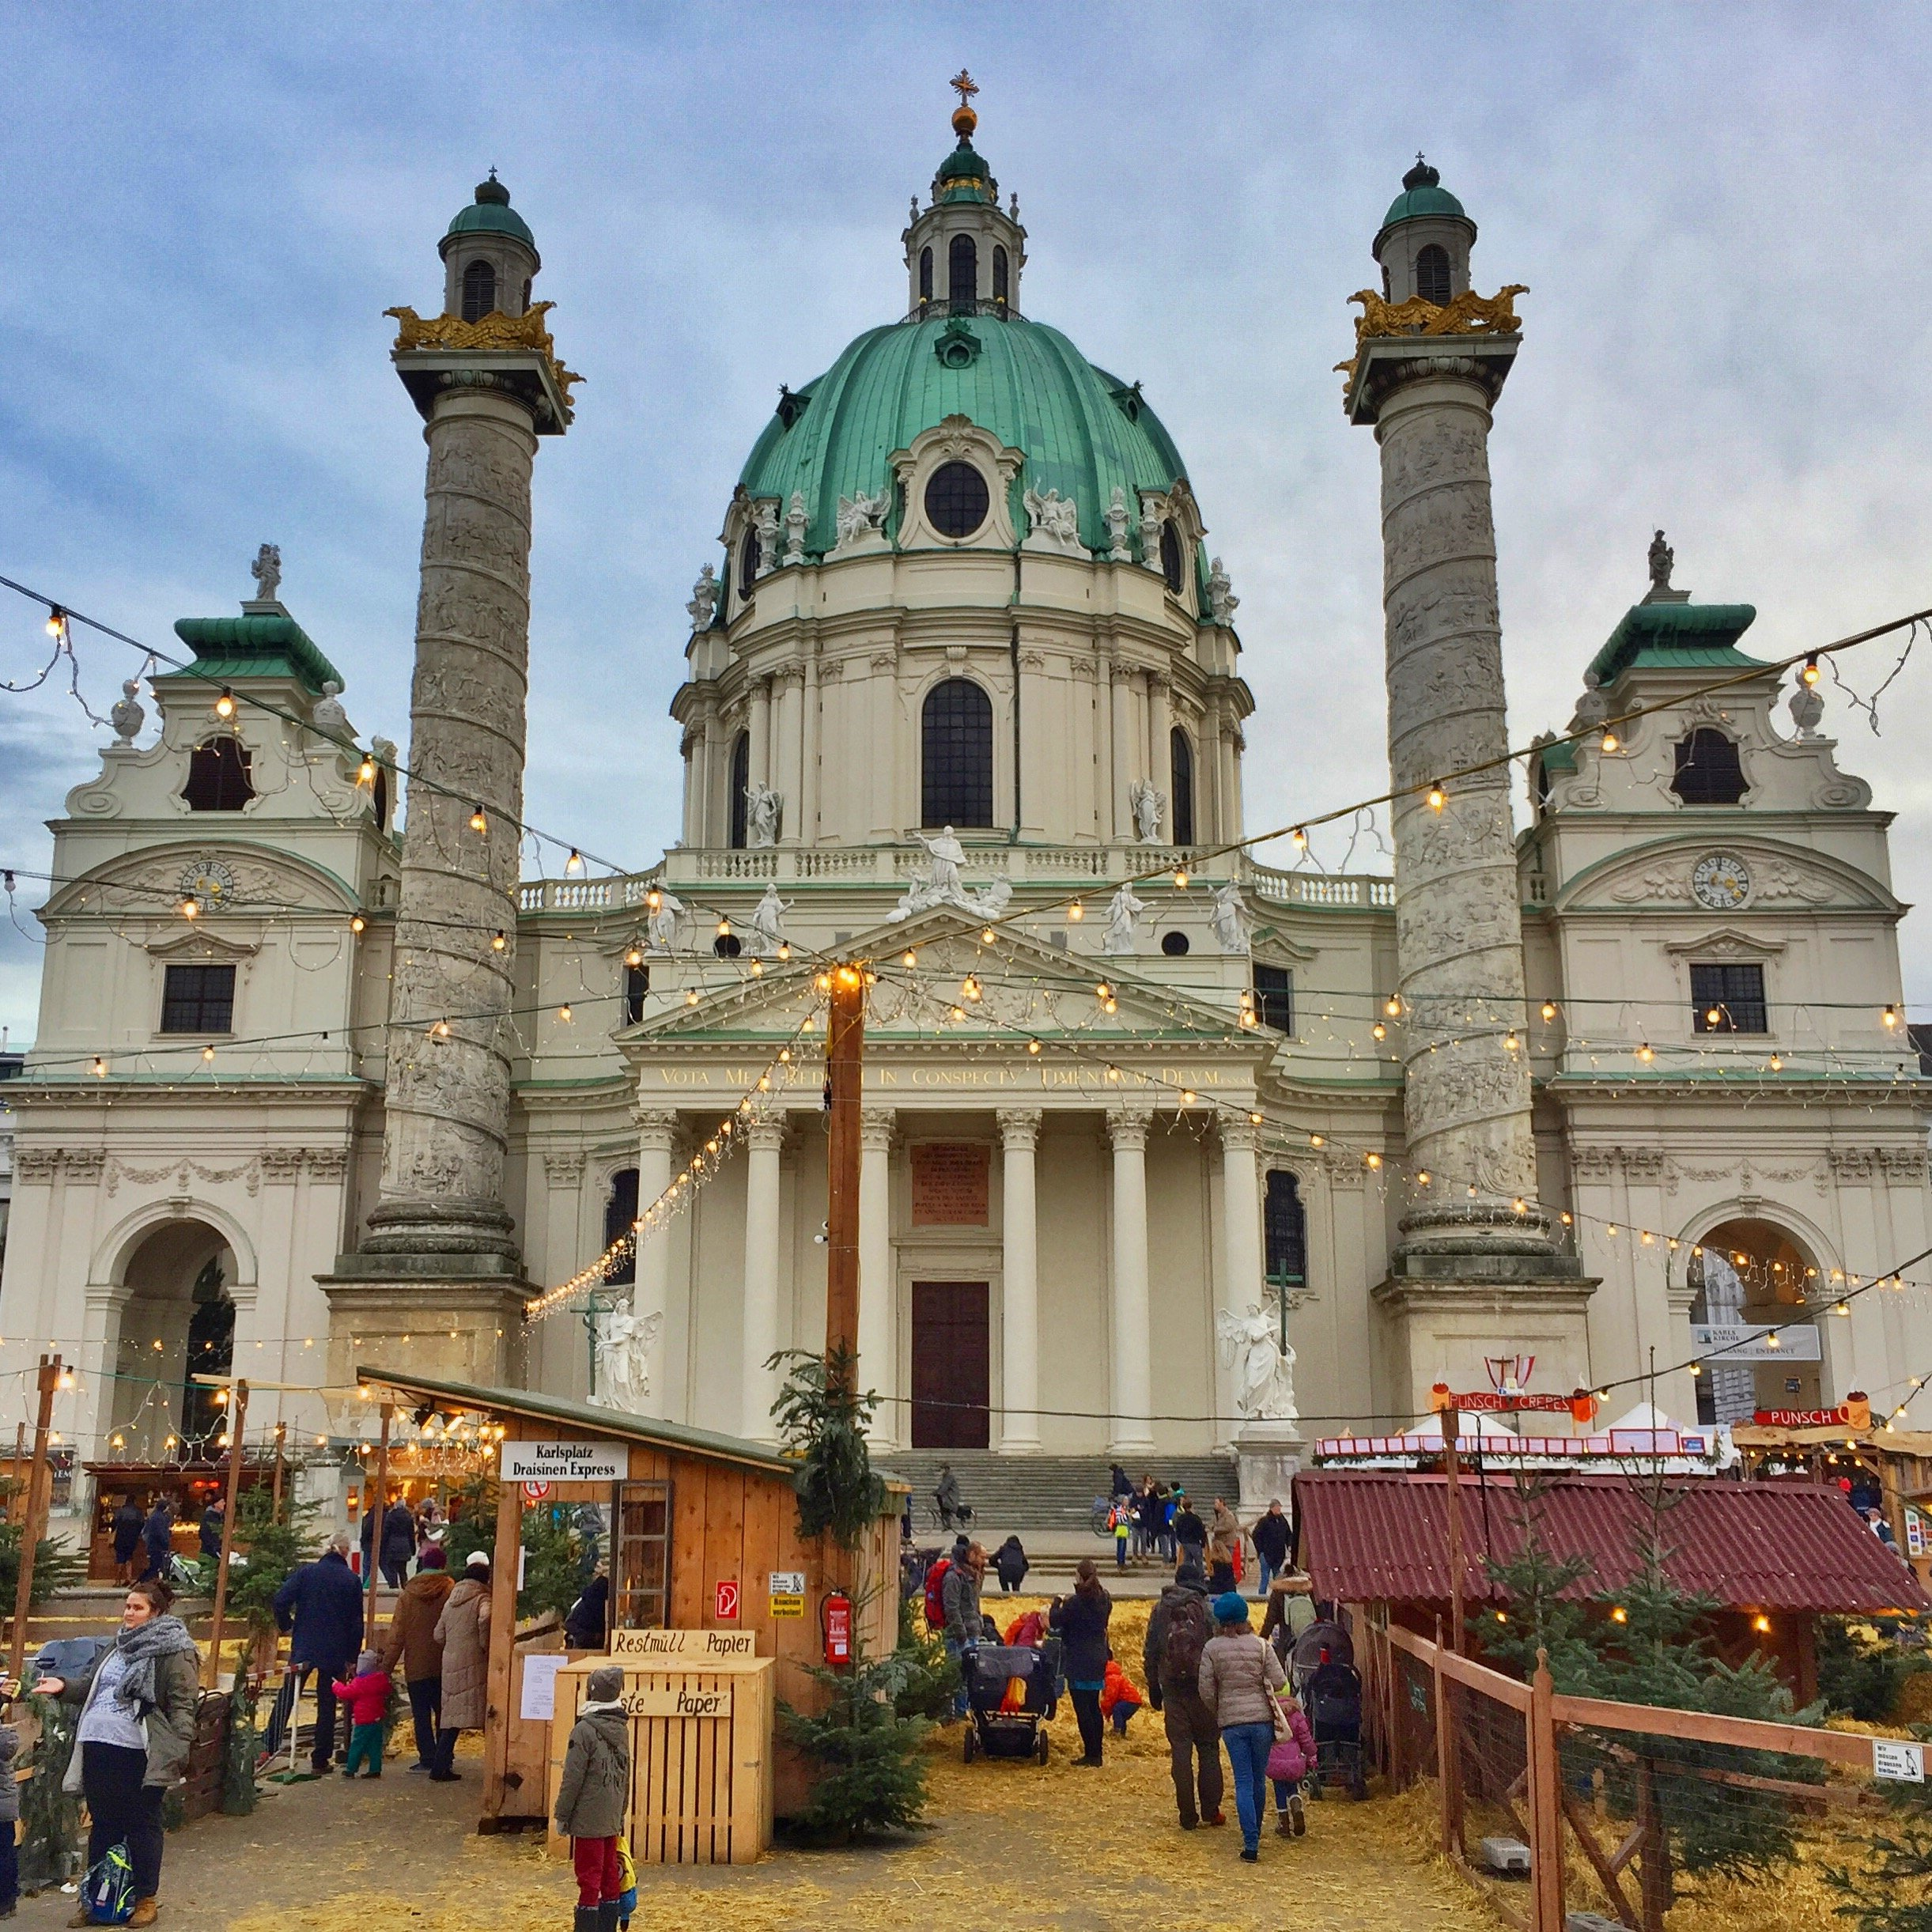 The Christmas Market at Karlsplatz